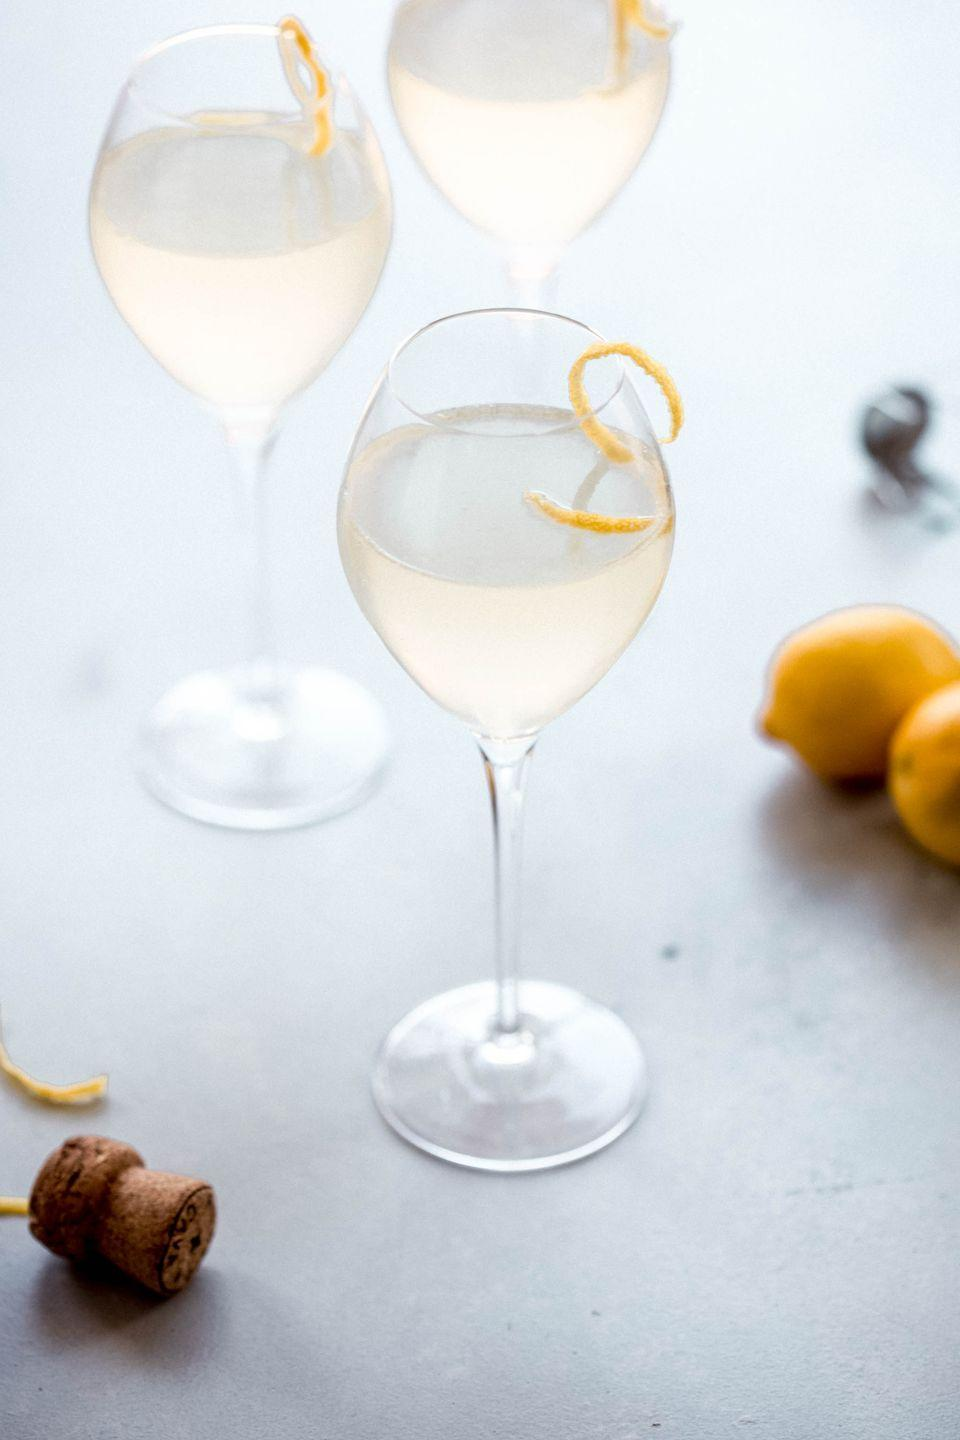 """<p>Get ready to pop some bottles: This fizzy drink feels fancy (just consider the name: French 75), but it's surprisingly simple to make. All you need is gin, simple syrup, freshly-squeezed lemon juice, and, yes, some bubbly.</p><p><a class=""""link rapid-noclick-resp"""" href=""""https://www.platingsandpairings.com/french-75-champagne-cocktail-2/"""" rel=""""nofollow noopener"""" target=""""_blank"""" data-ylk=""""slk:GET THE RECIPE"""">GET THE RECIPE</a></p>"""